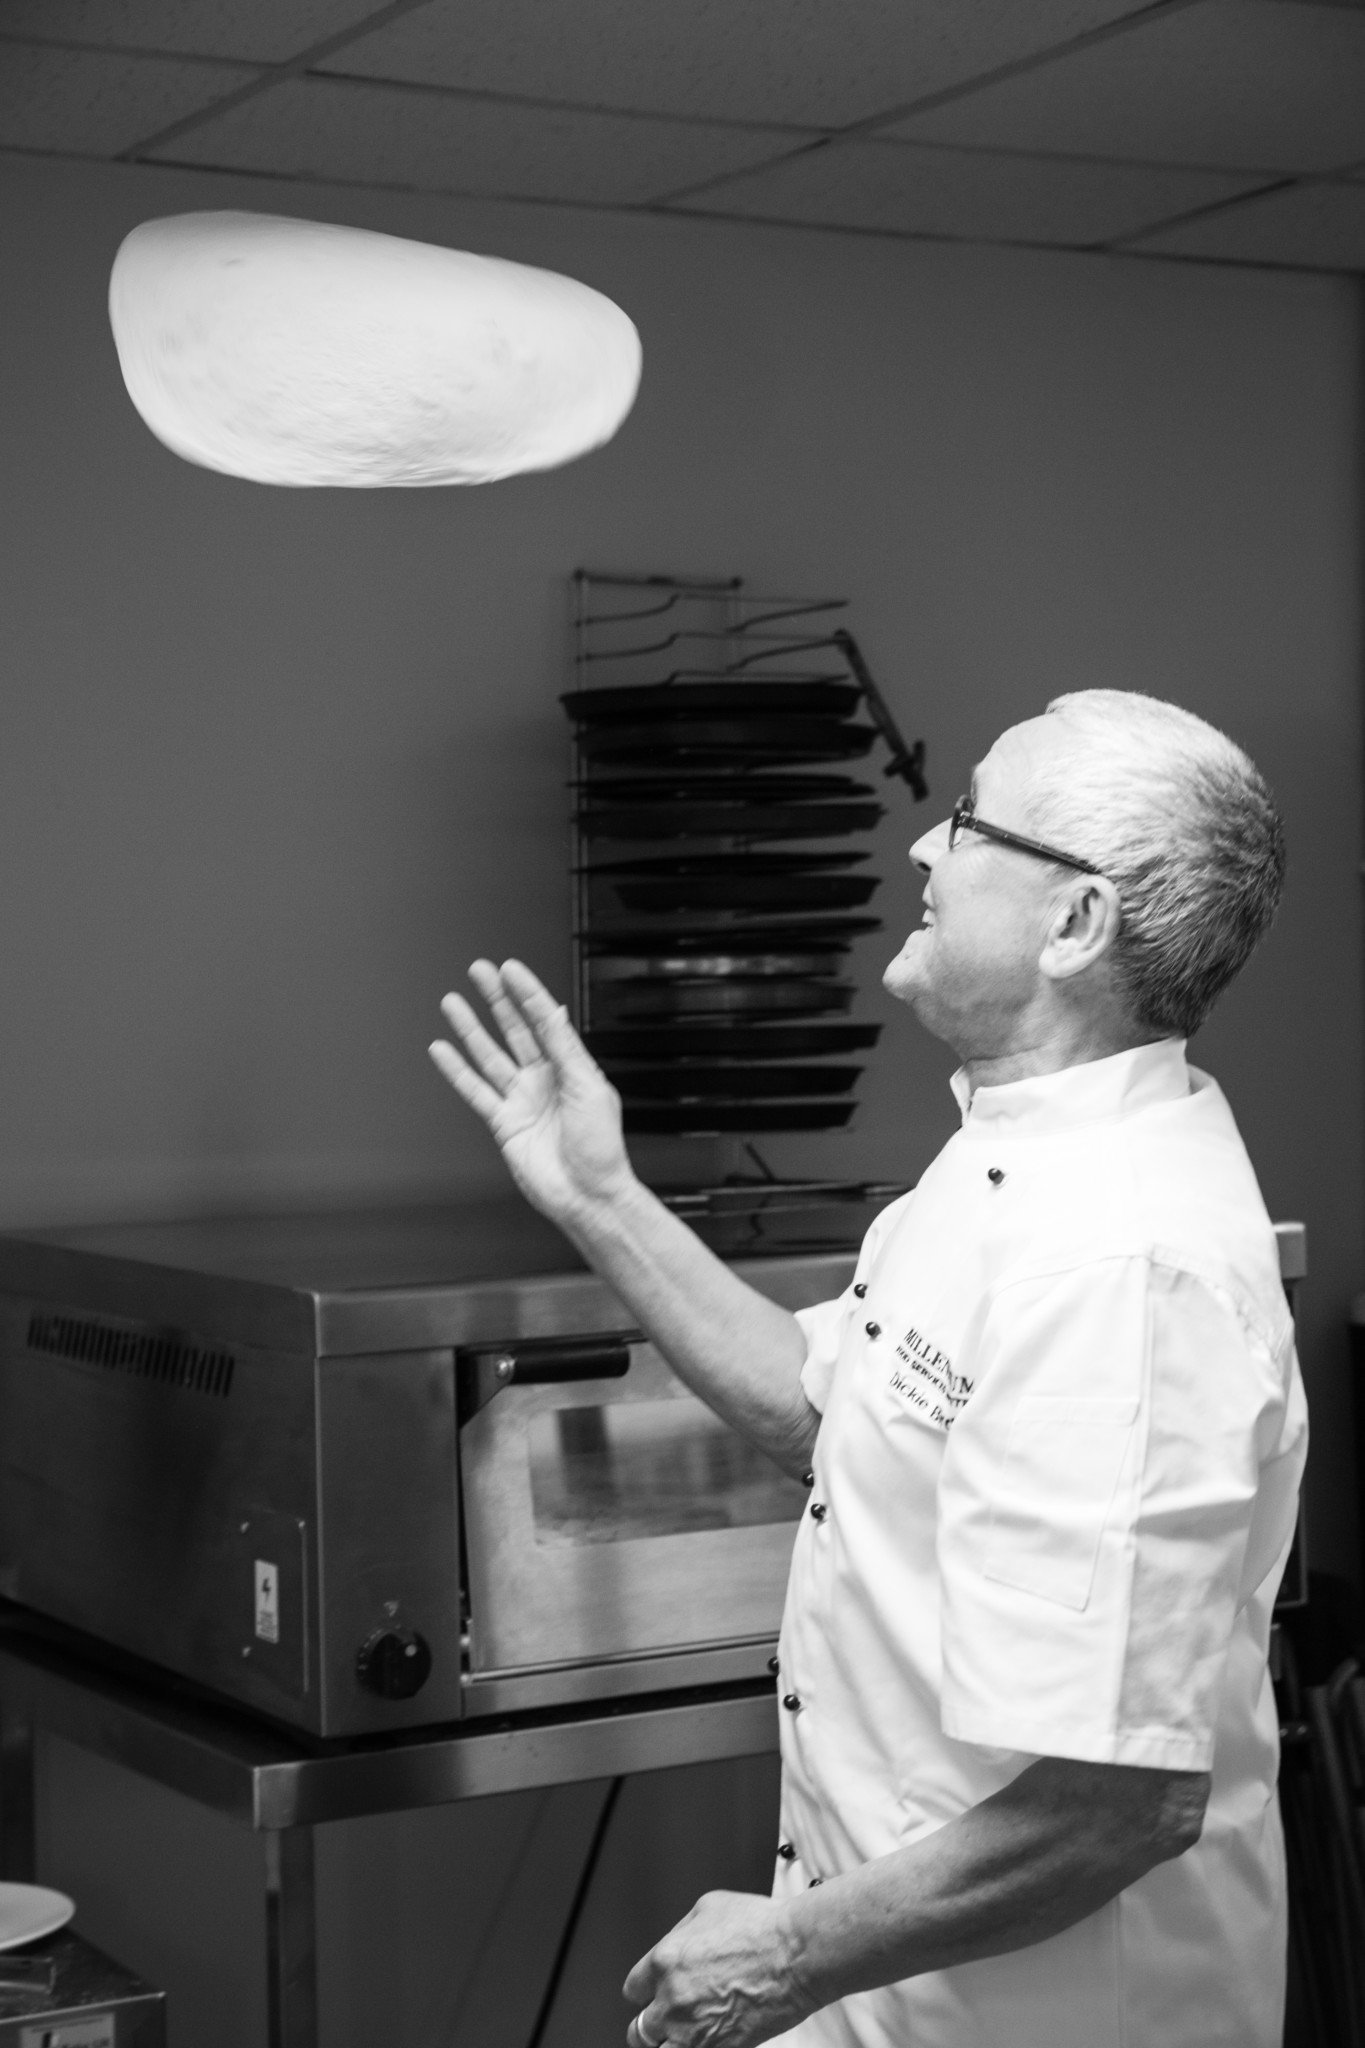 Chef hand throwing pizza dough